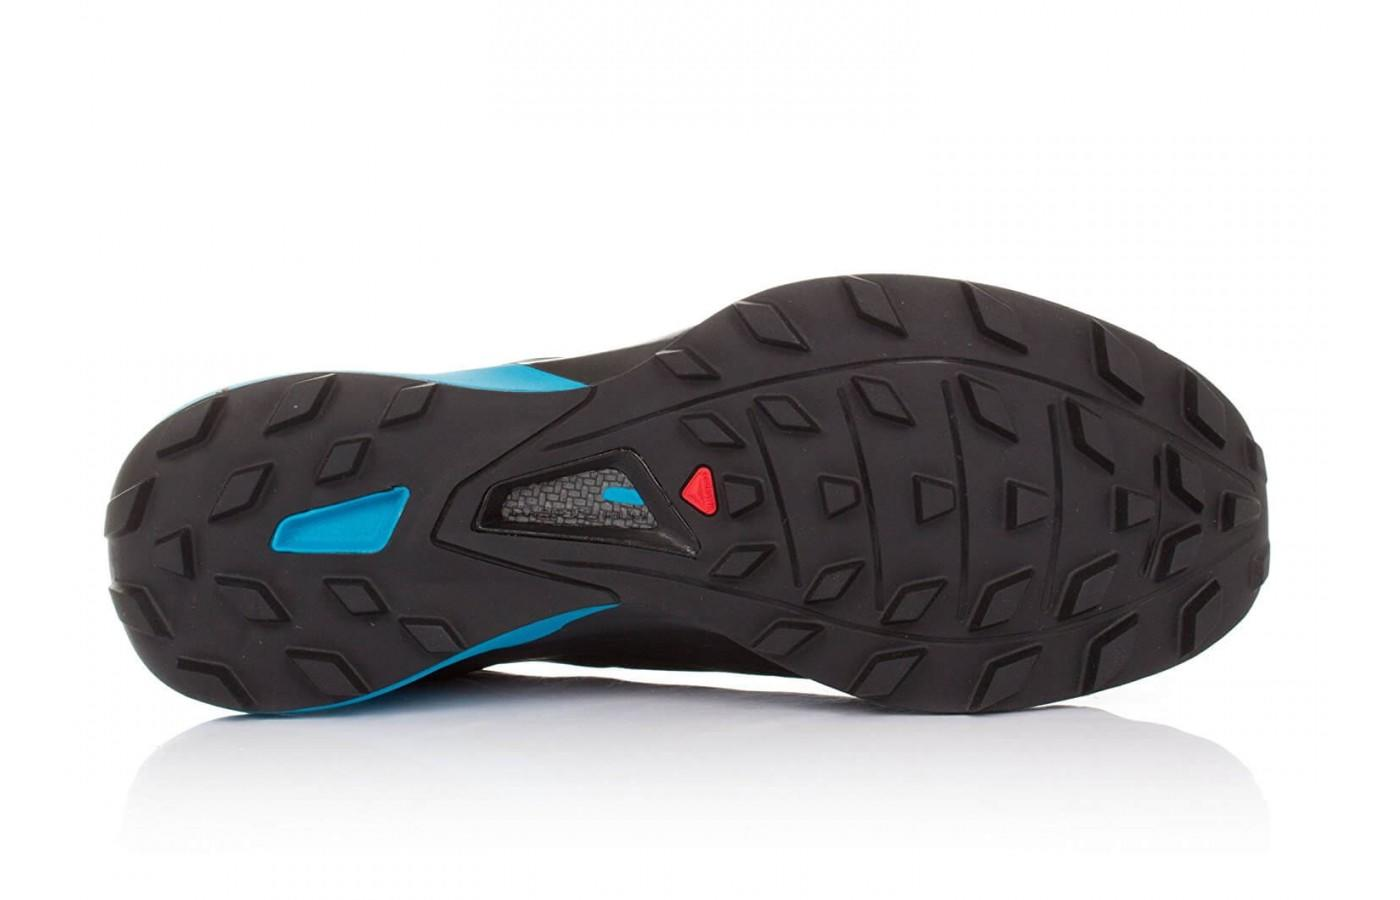 the Salomon S-Lab Xa Amphib has a Premium Wet Traction Contagrip outsole for traction on wet and dry surfaces